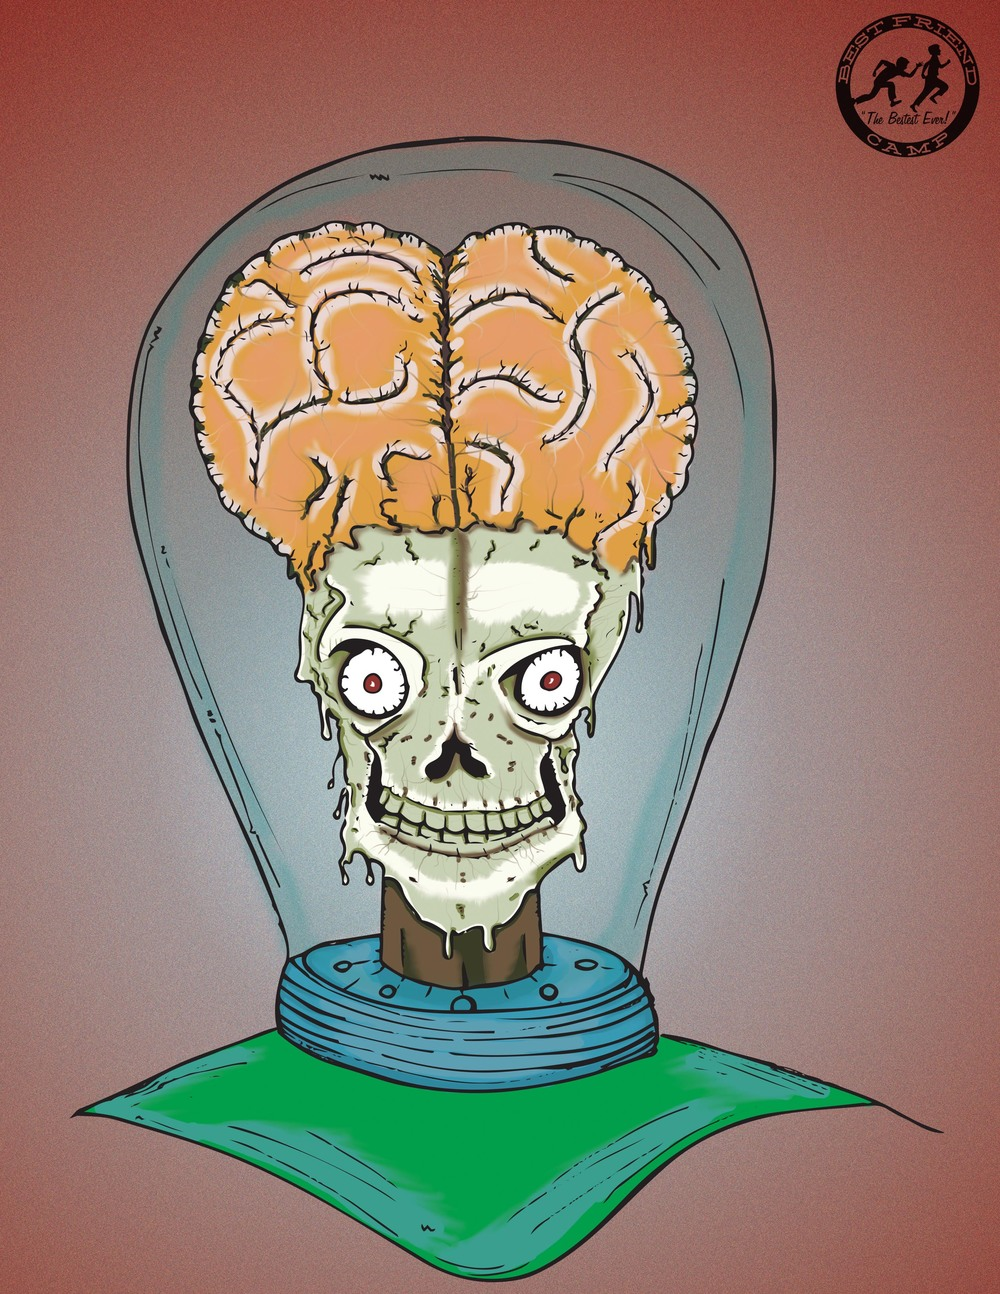 Mars_Attacks_01.jpg